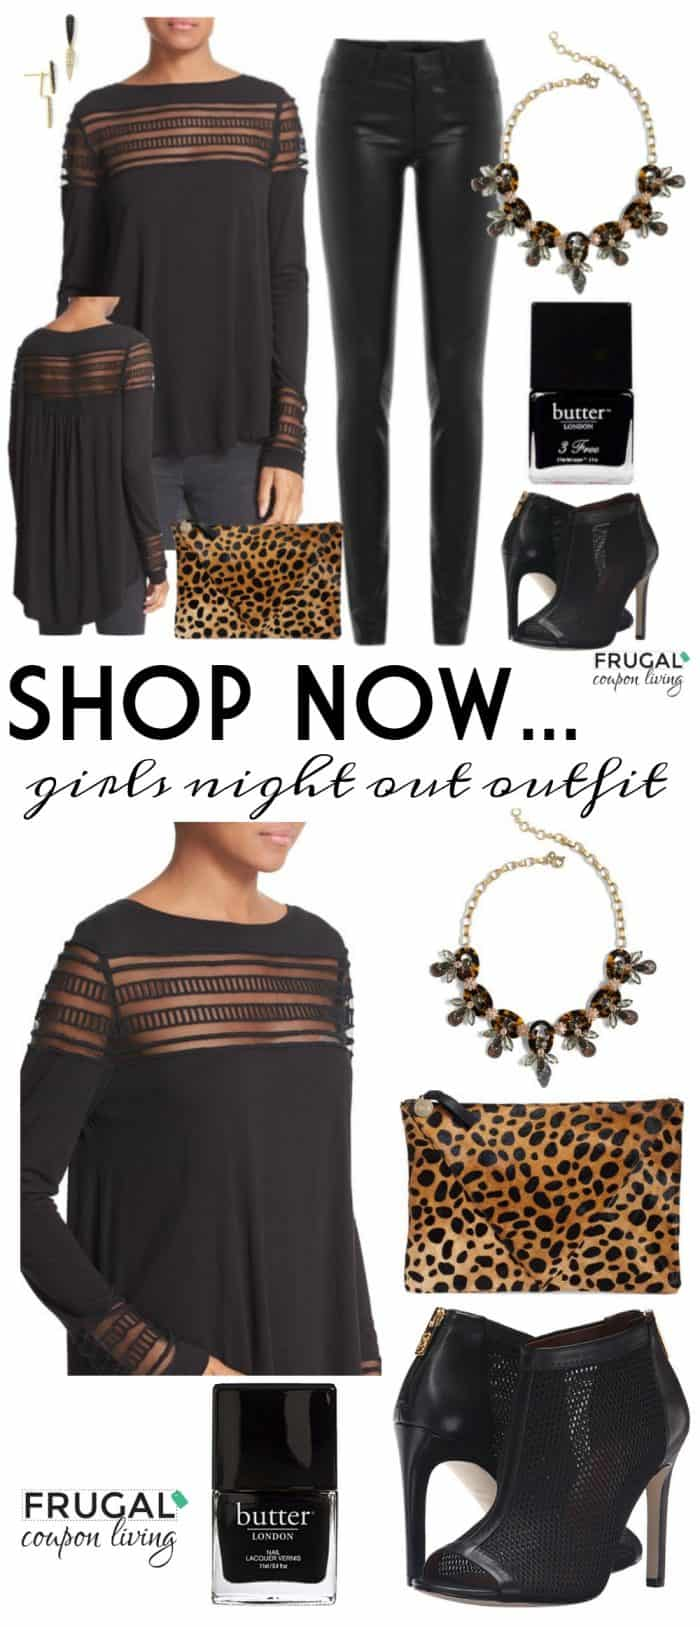 girls-night-out-outfit-frugal-coupon-living-frugal-fashion-friday-long